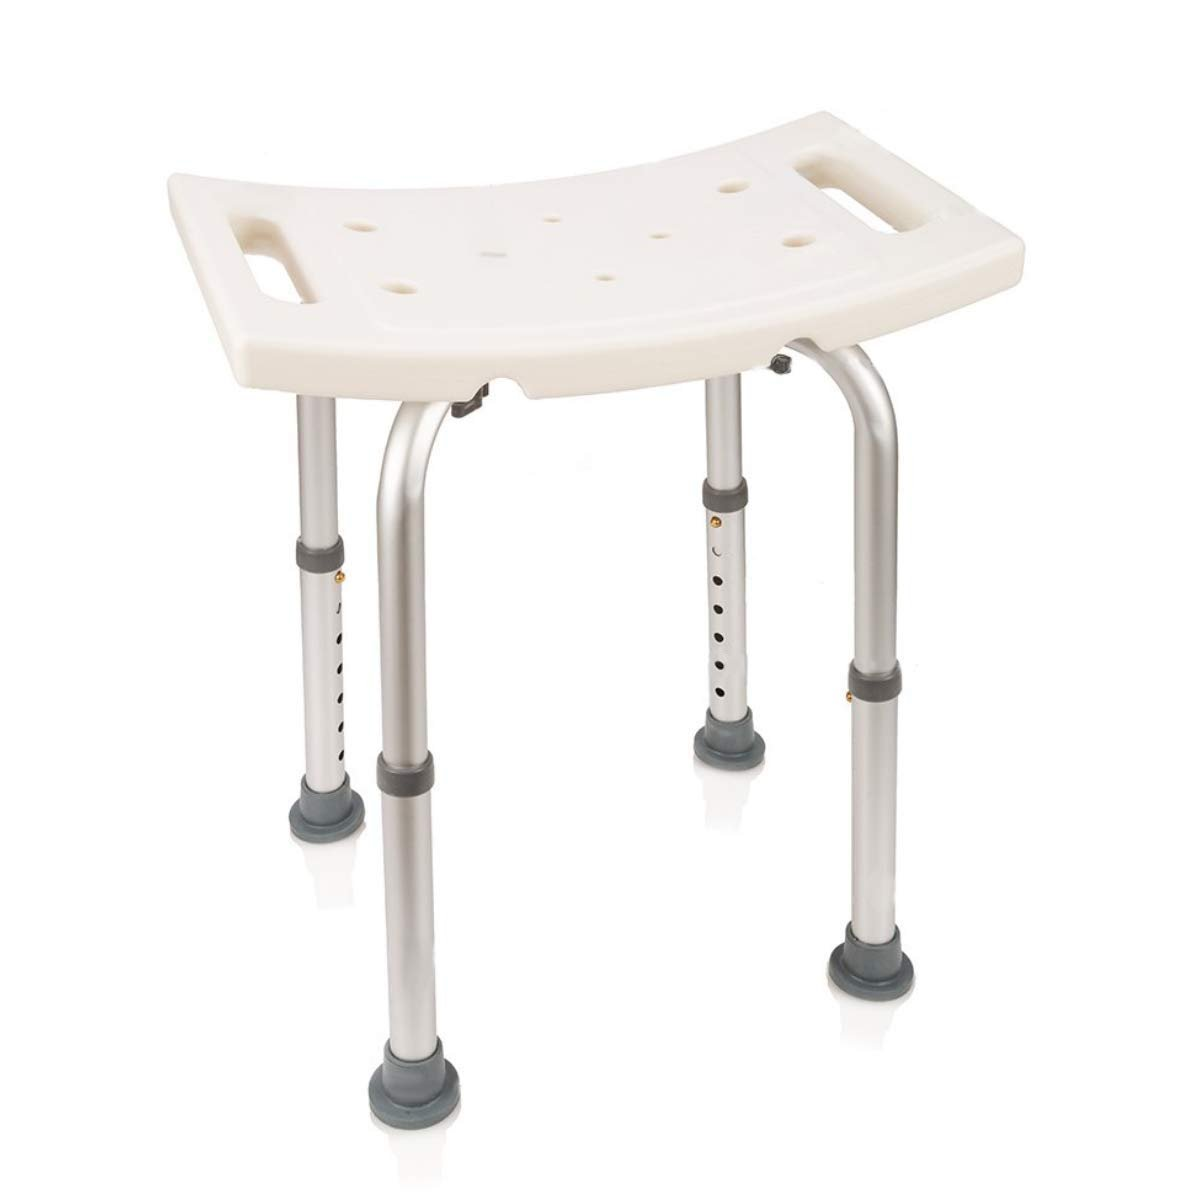 Astonishing Healthline Bath Bench Without Back Adjustable Shower Chair Without Back Shower Bench Non Slip Seat Bathtub Stool For Seniors Elderly Disabled Ibusinesslaw Wood Chair Design Ideas Ibusinesslaworg